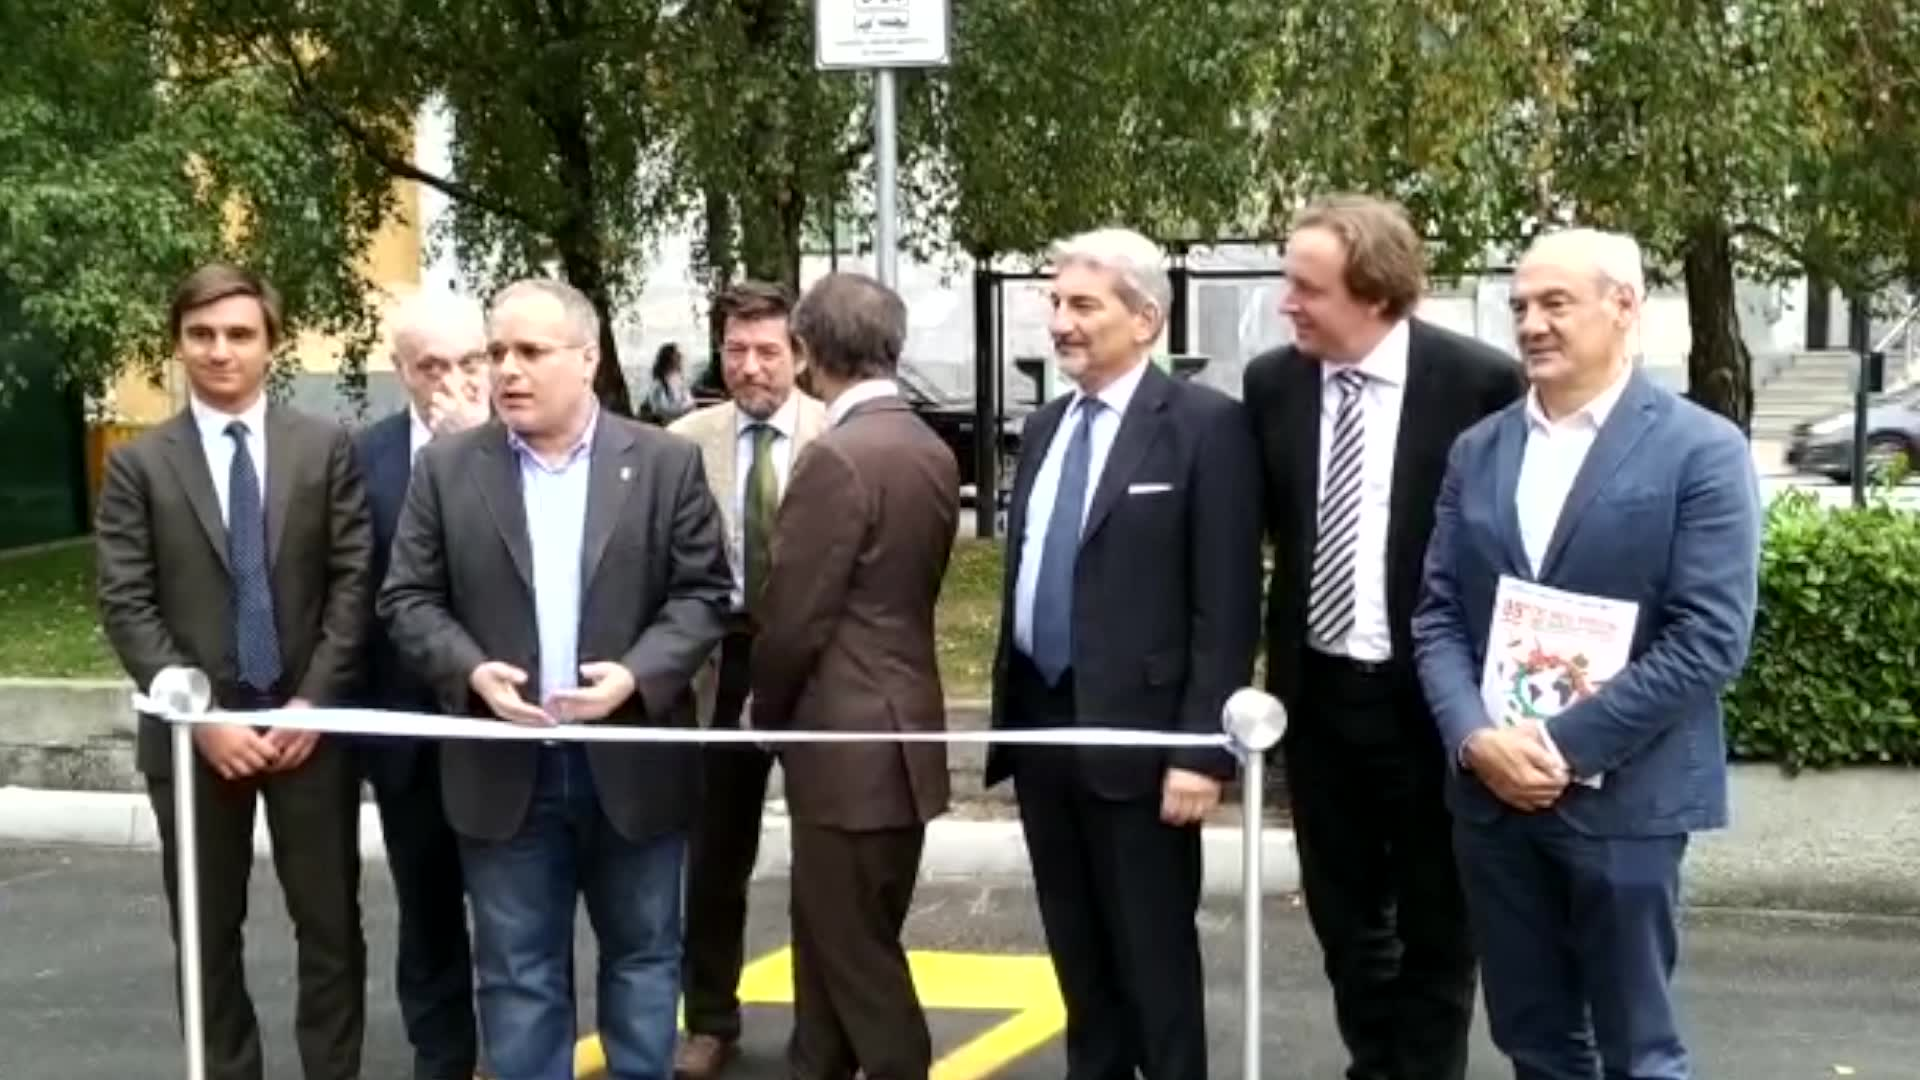 Video: E-District, Saronno capitale della mobilità sostenibile